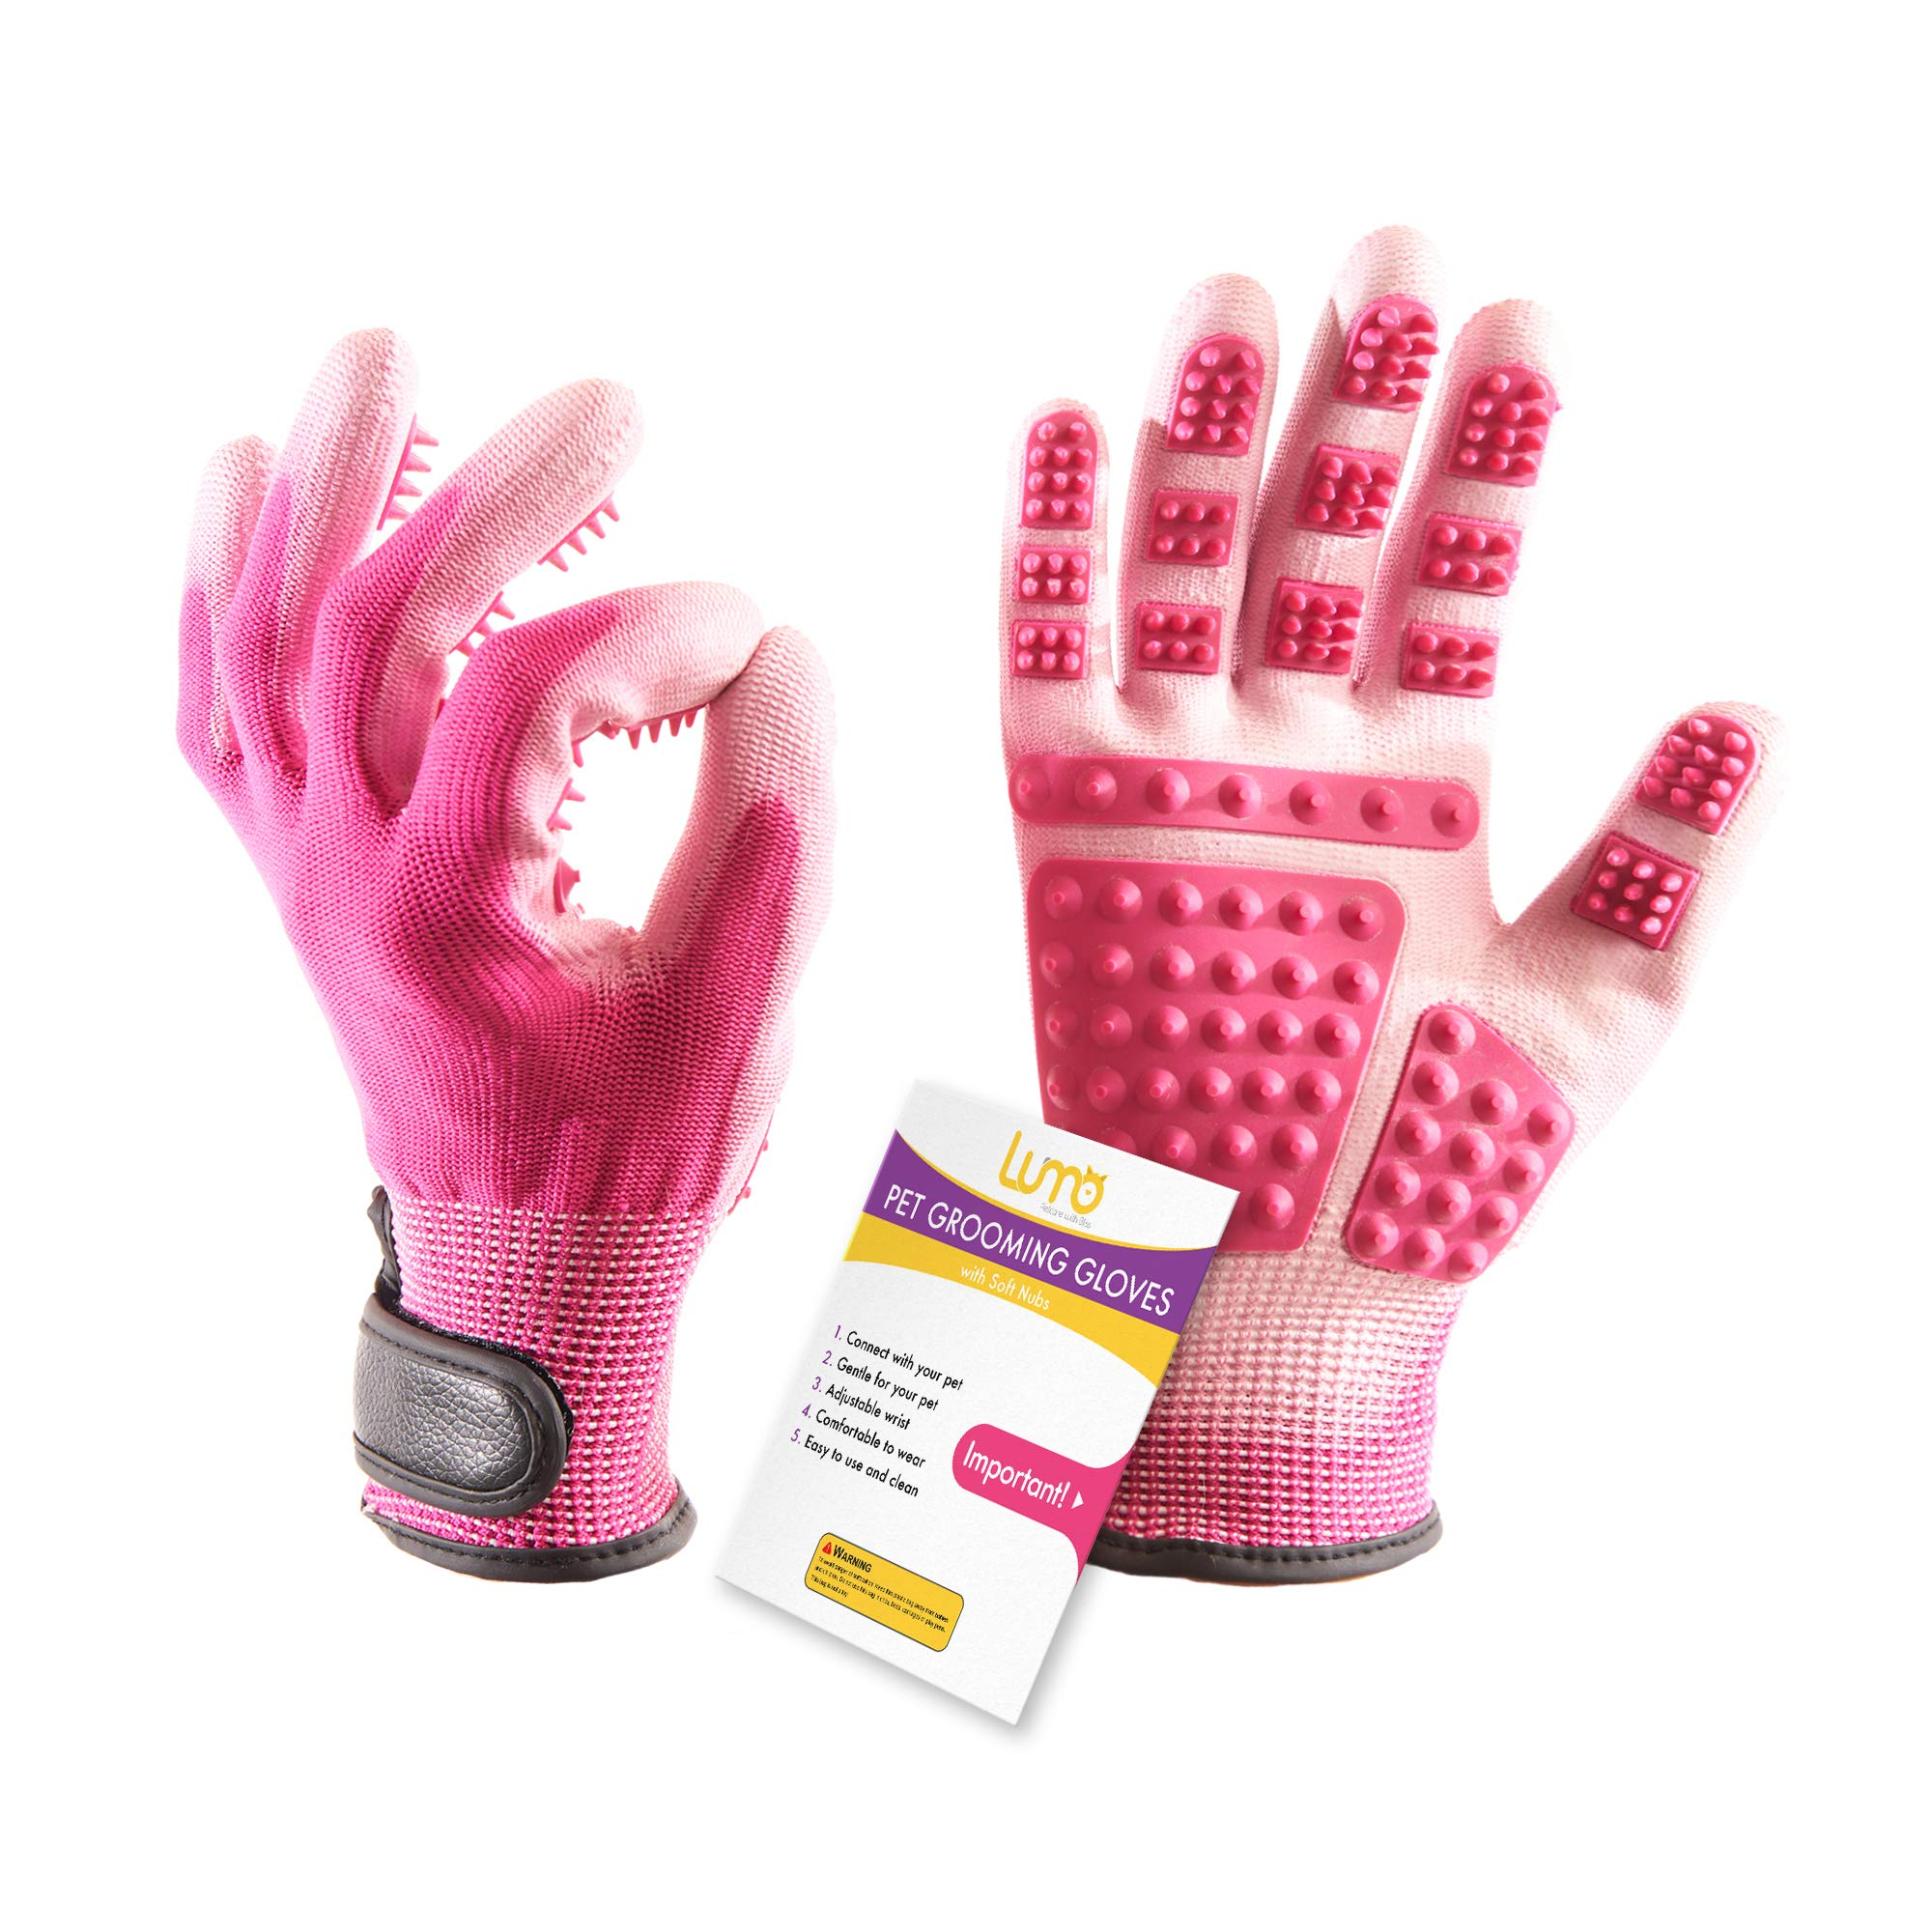 Pet Grooming Glove Deshedding Glove - Loose Pet Hair Remover Gloves, Works Better than Pet Brush (Size 7.5 Inch) - 1 Pair